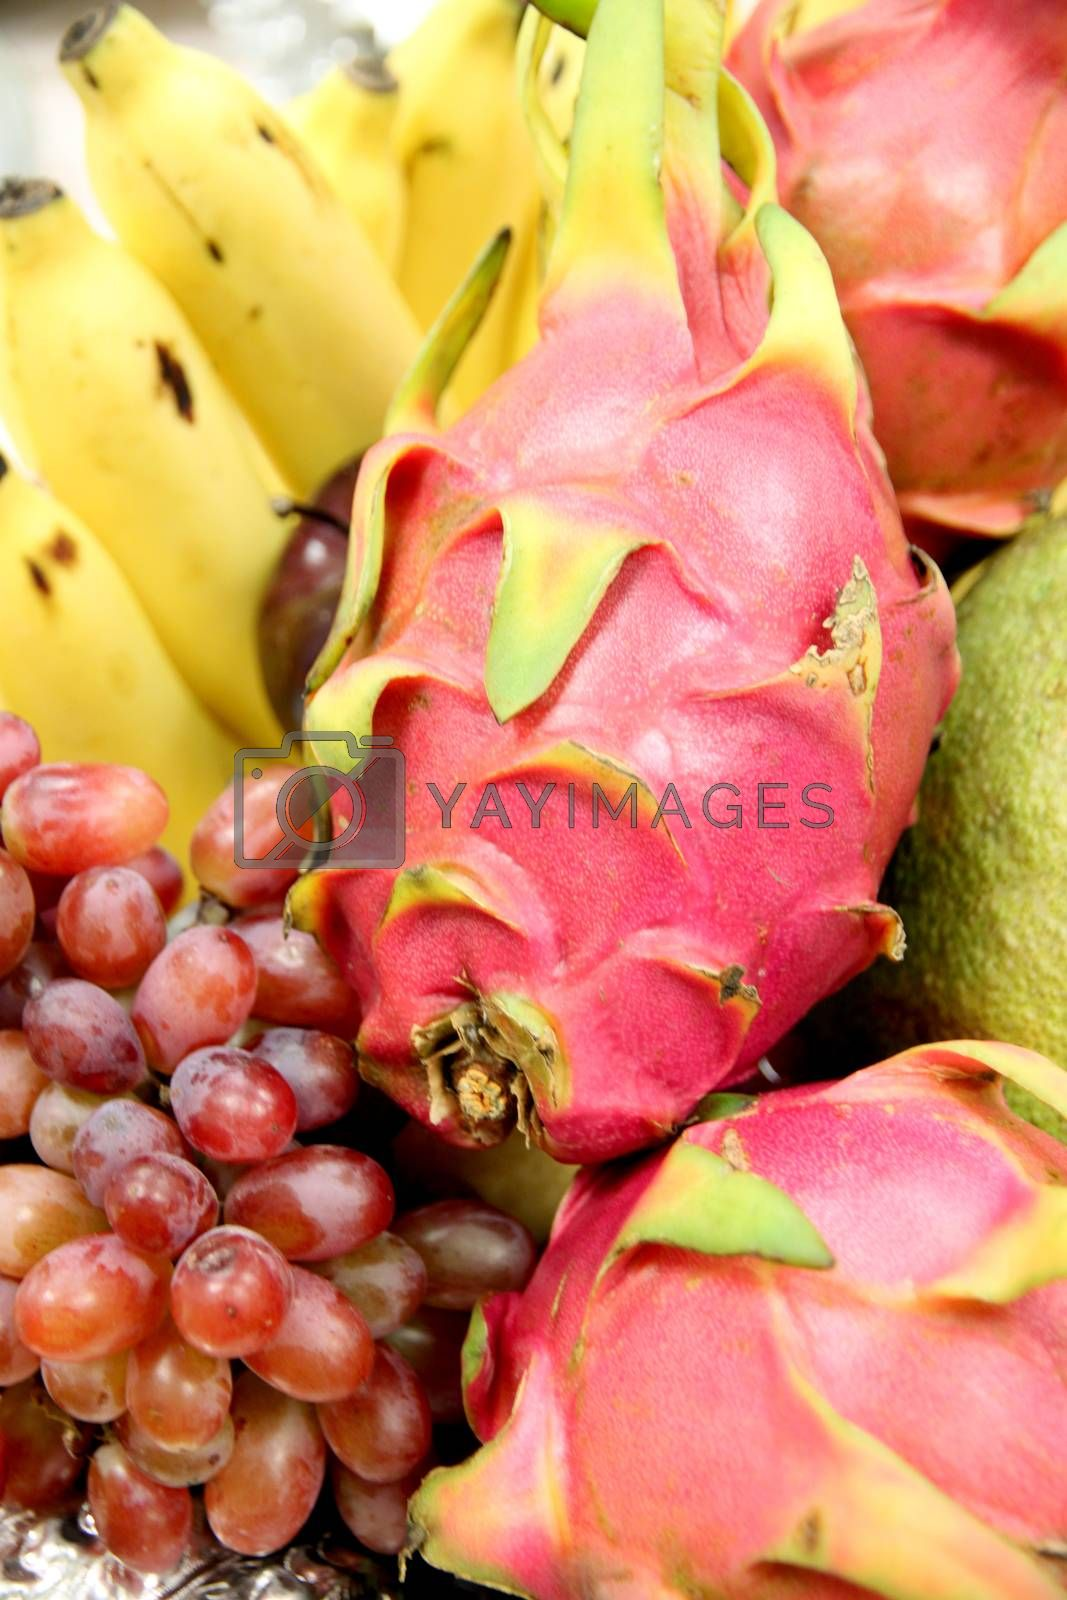 Fruit Gathered in basket on white background and Composition to Design.